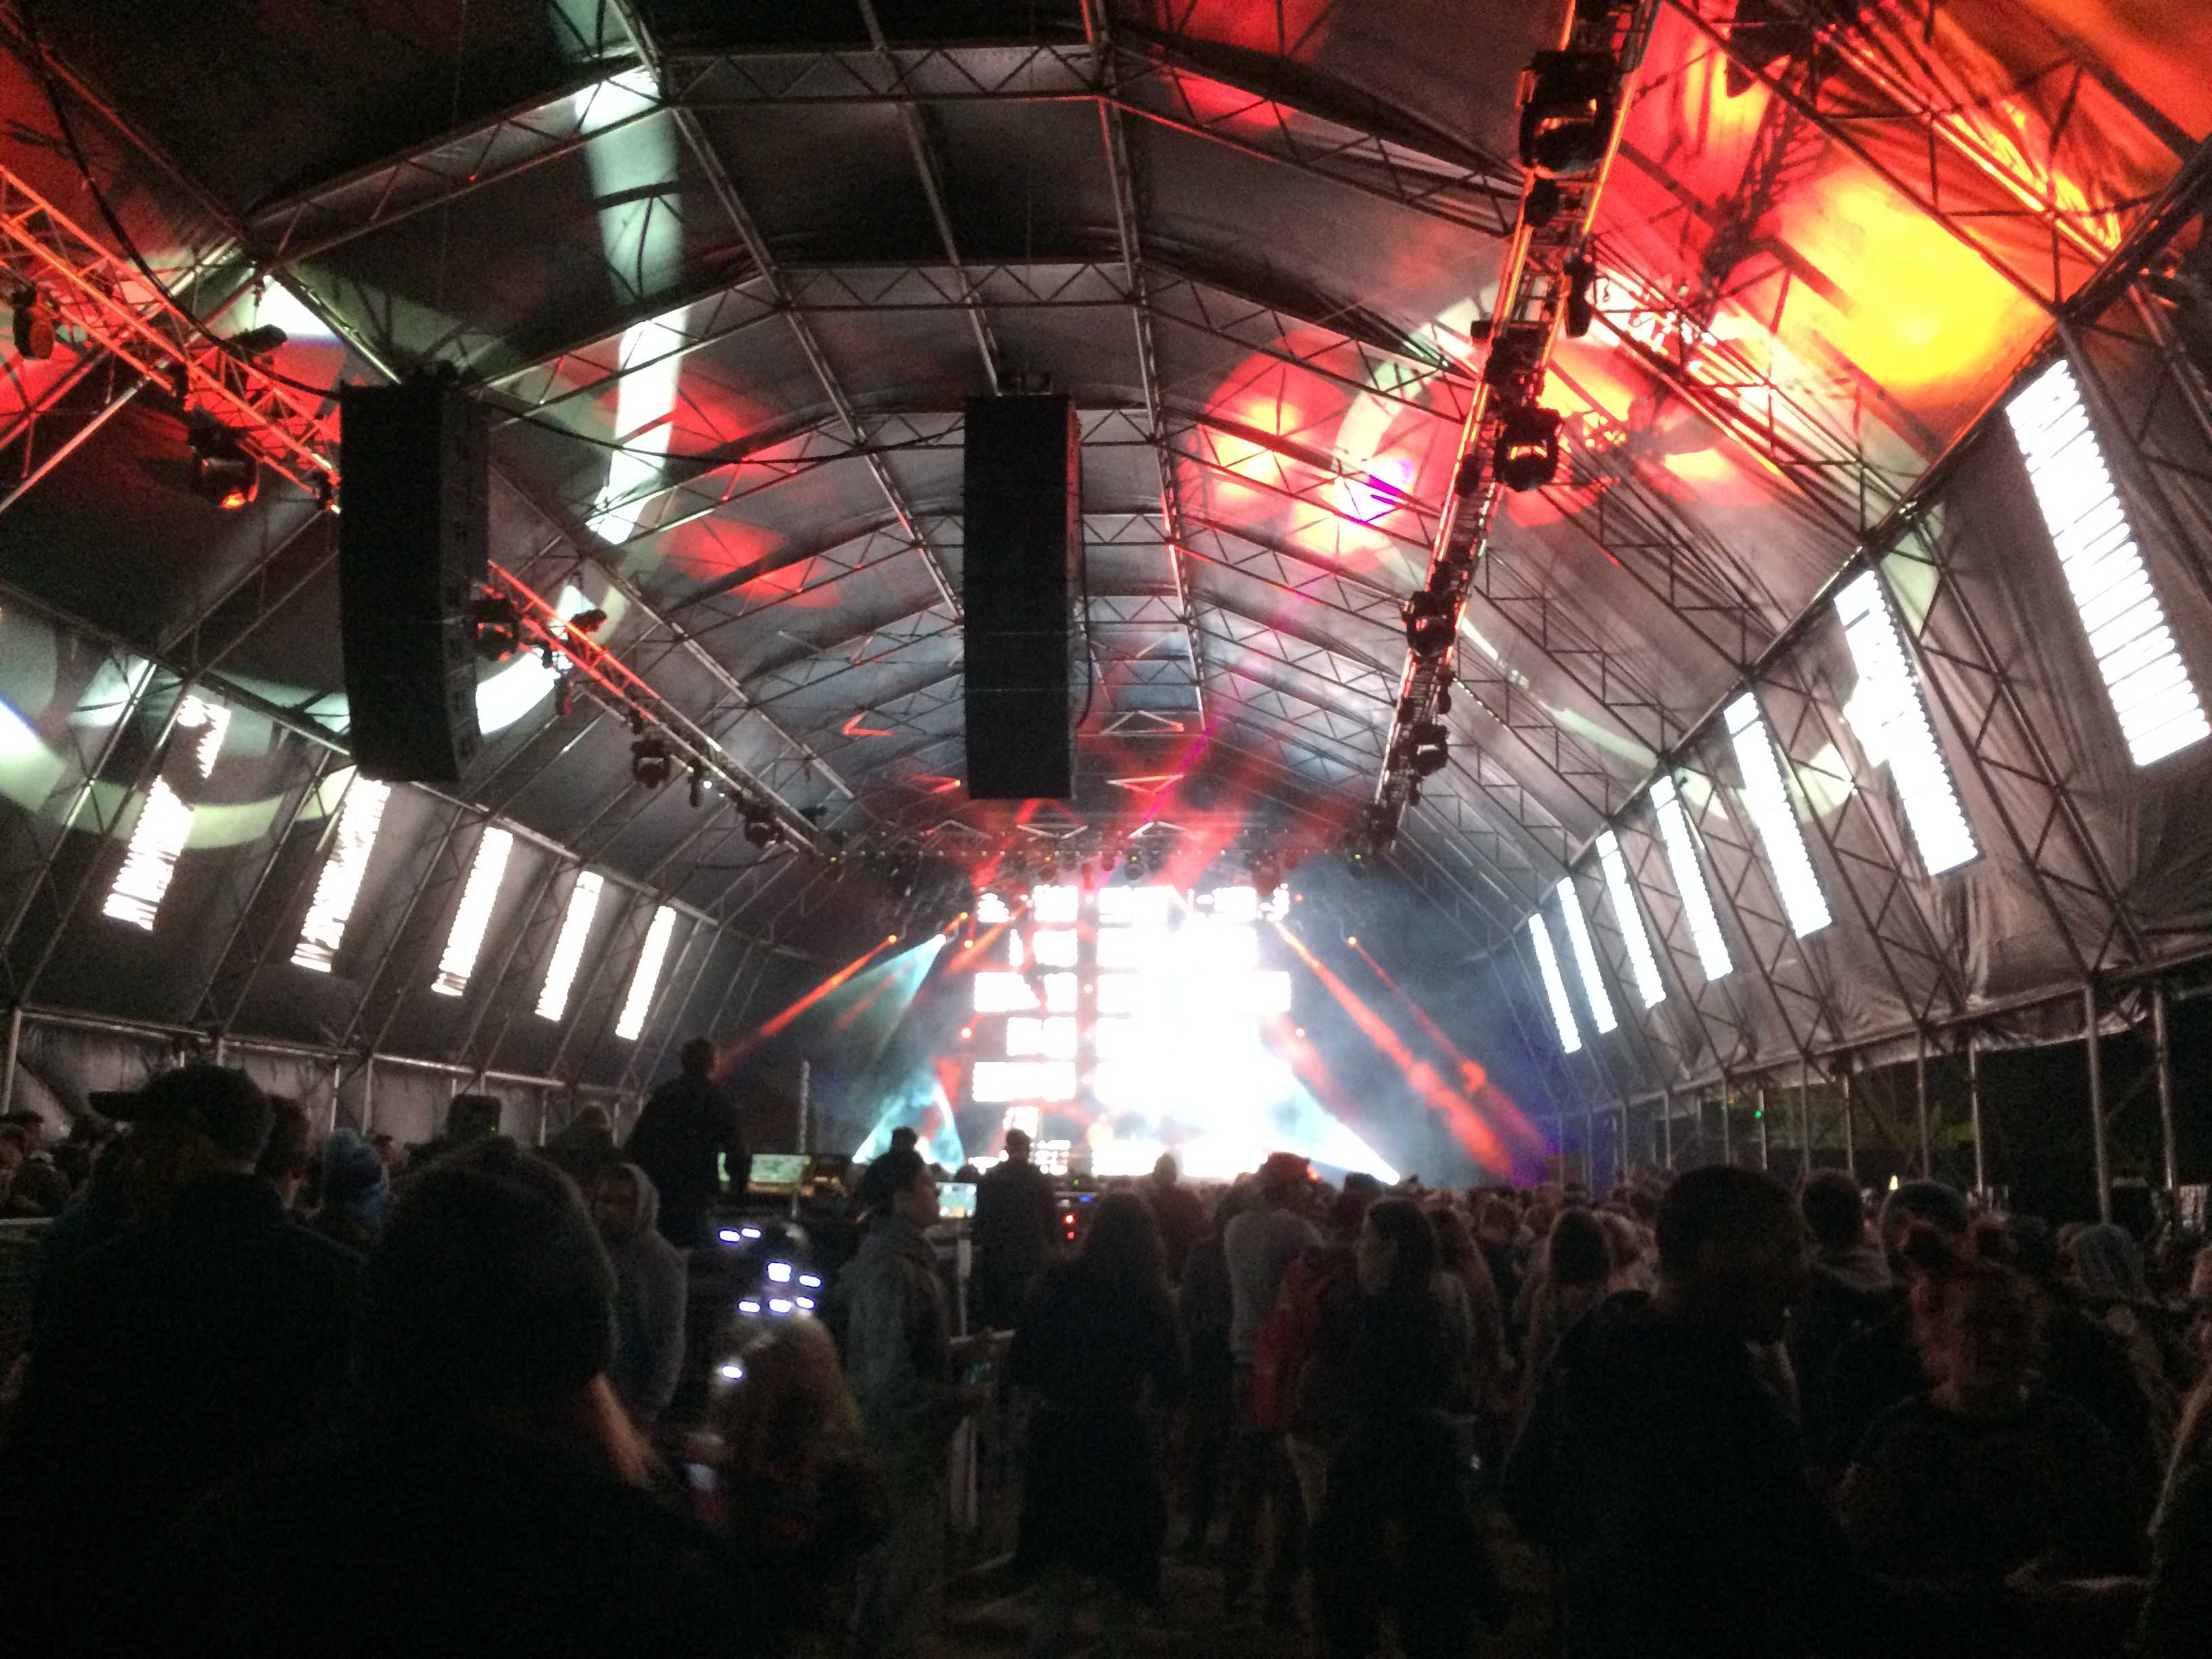 giant festival tent with lights projected on the walls and LED stage lights